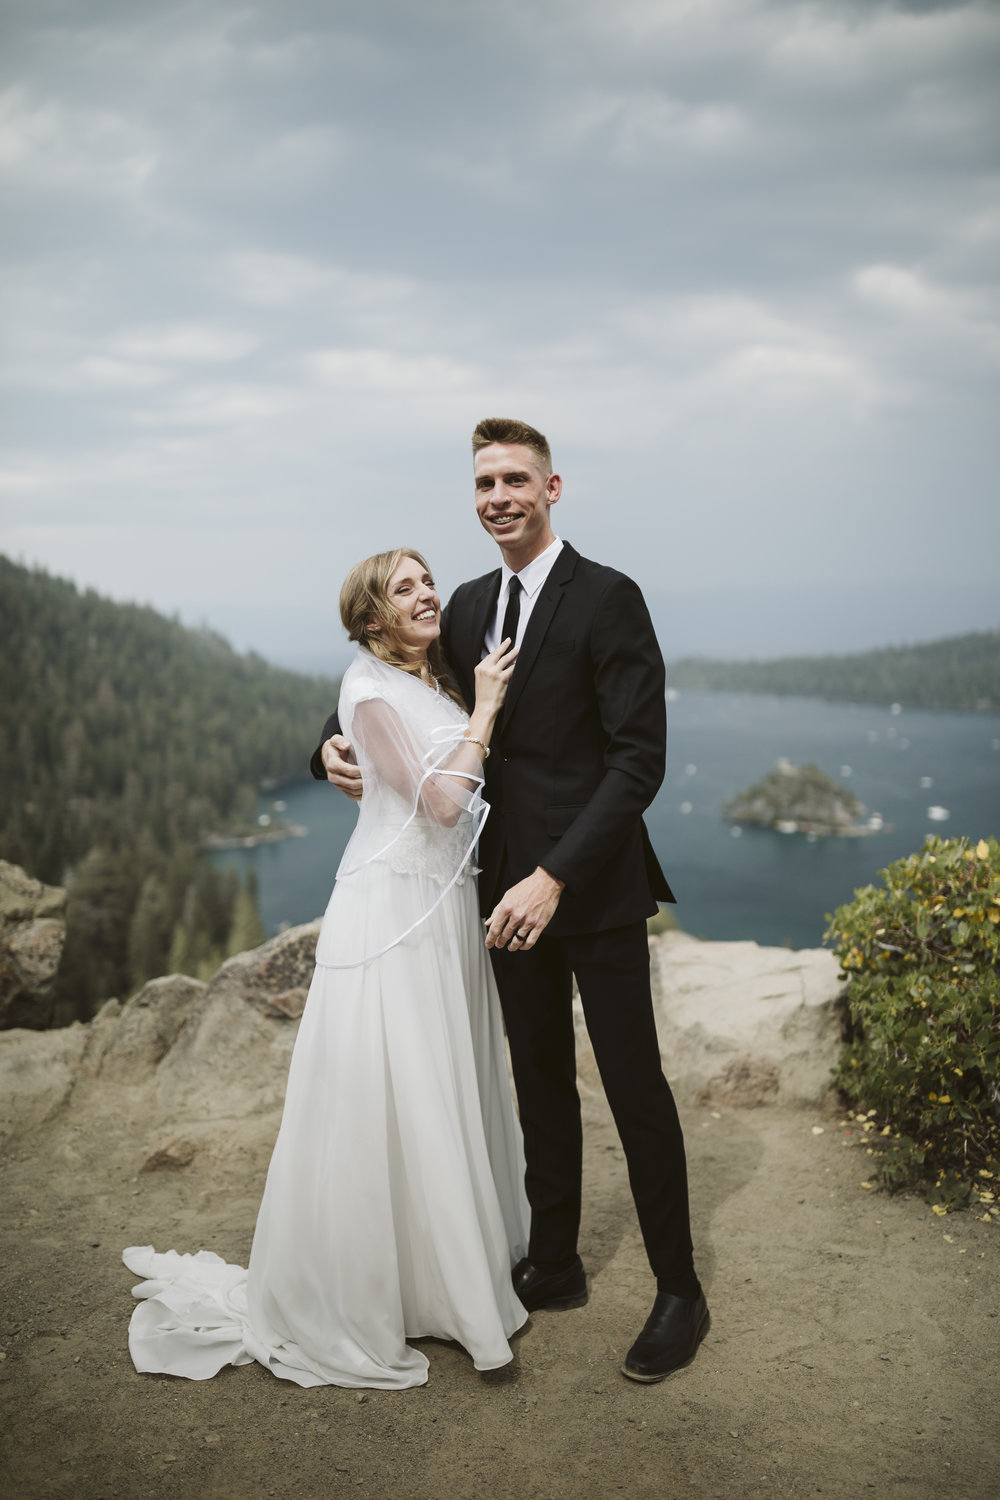 0M7A0773vildphotography-adventurewedding-adventurouswedding-tahoewedding-laketahoewedding-adventureelopement-laketahoeweddingphotographer-wedding-photographer-weddingphotographer-Chase-Sam.jpg